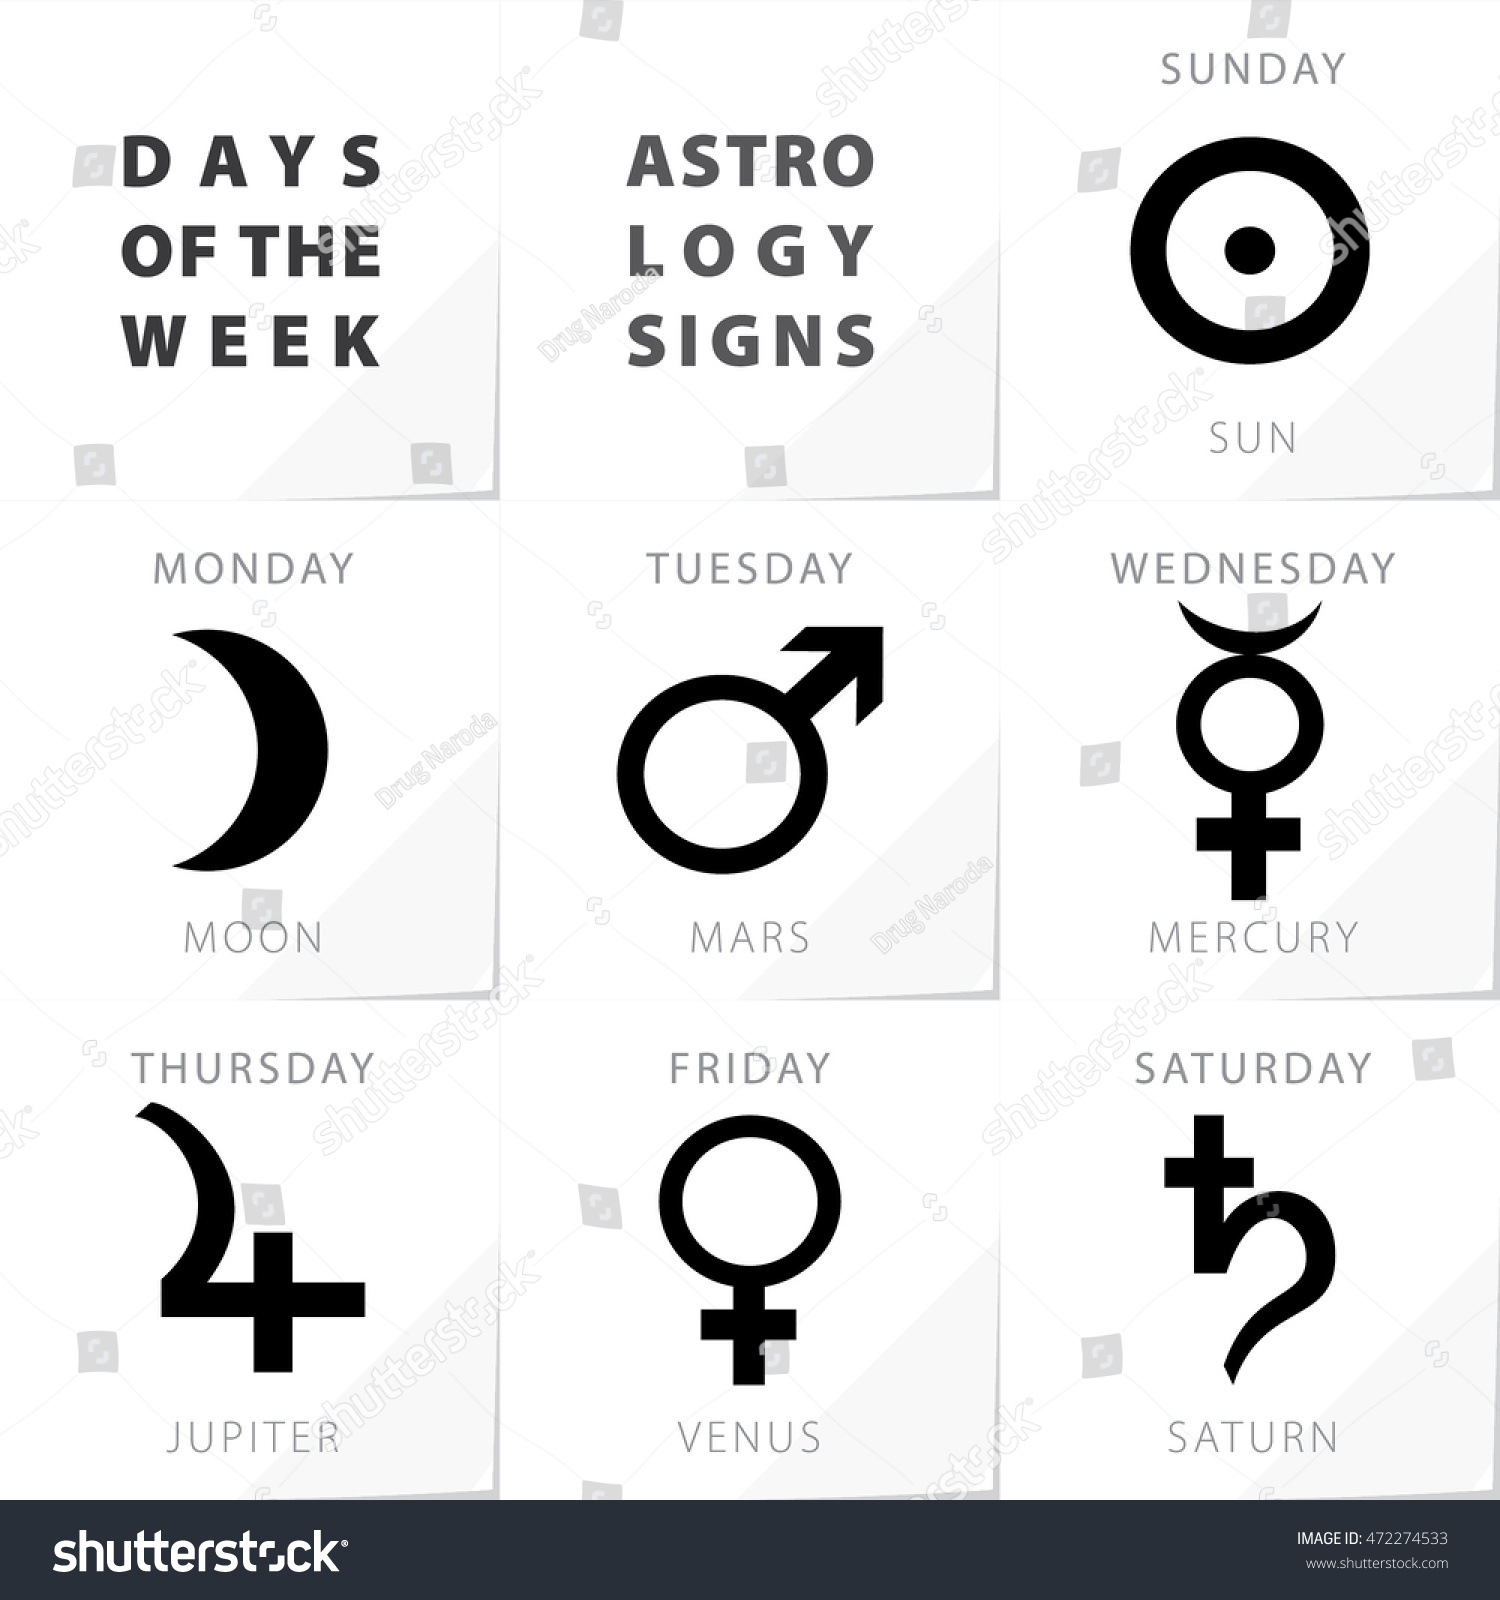 Week Days Astrology Signs Moon Mars Stock Vector Royalty Free